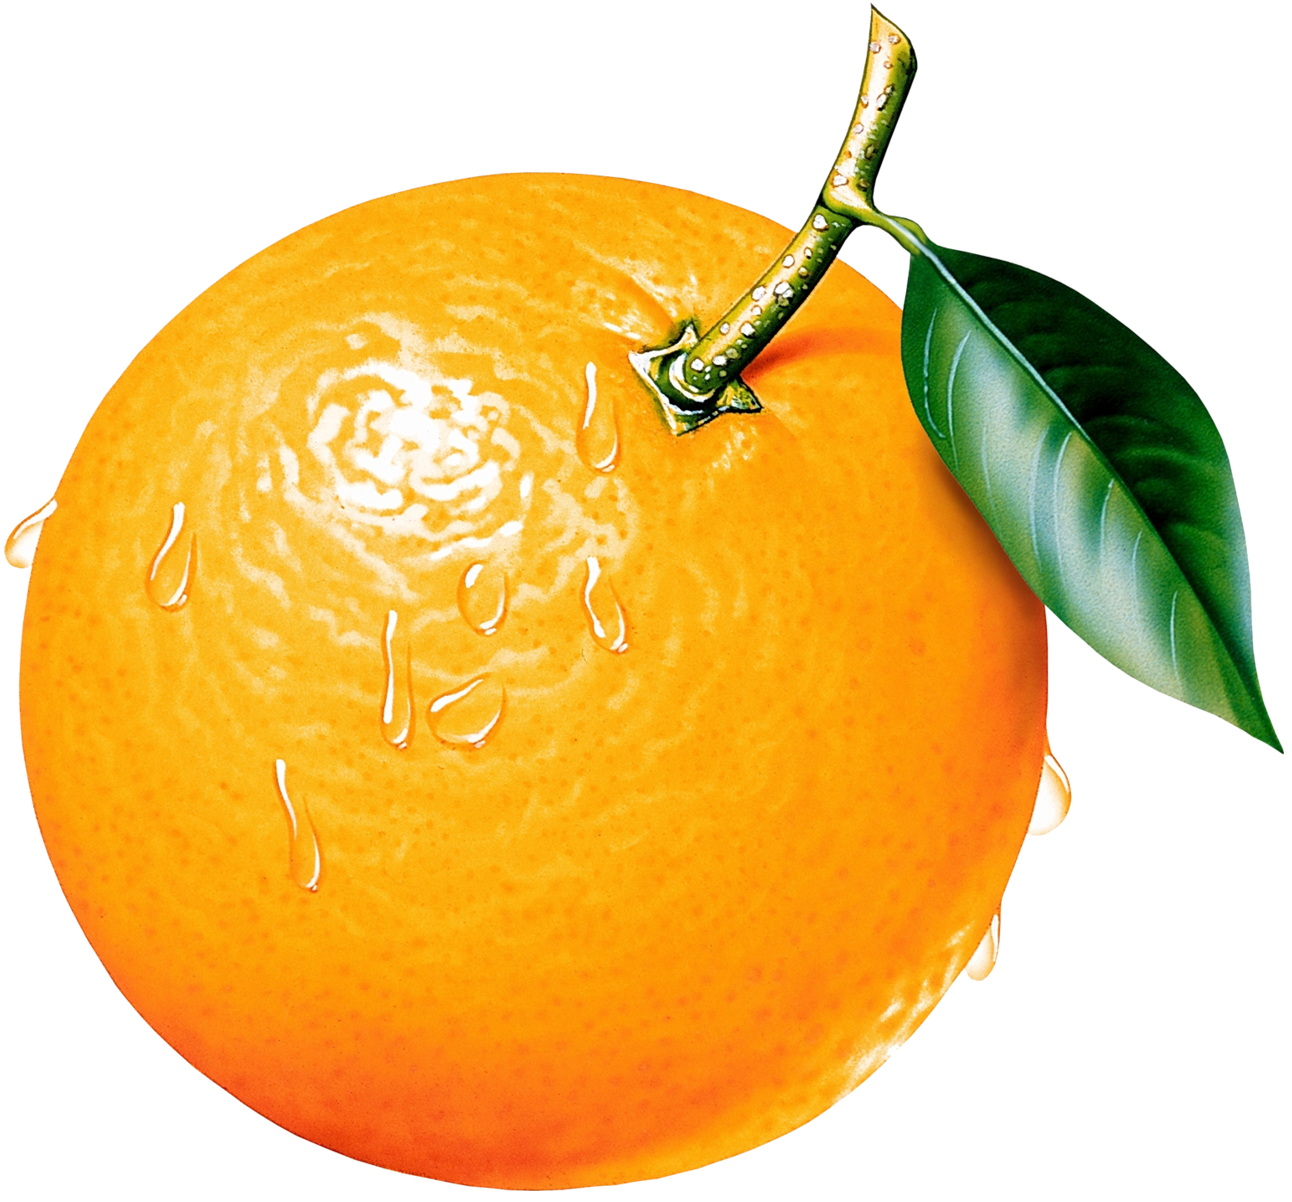 Orange Fruit Tree Clip Art | Clipart Panda - Free Clipart ...